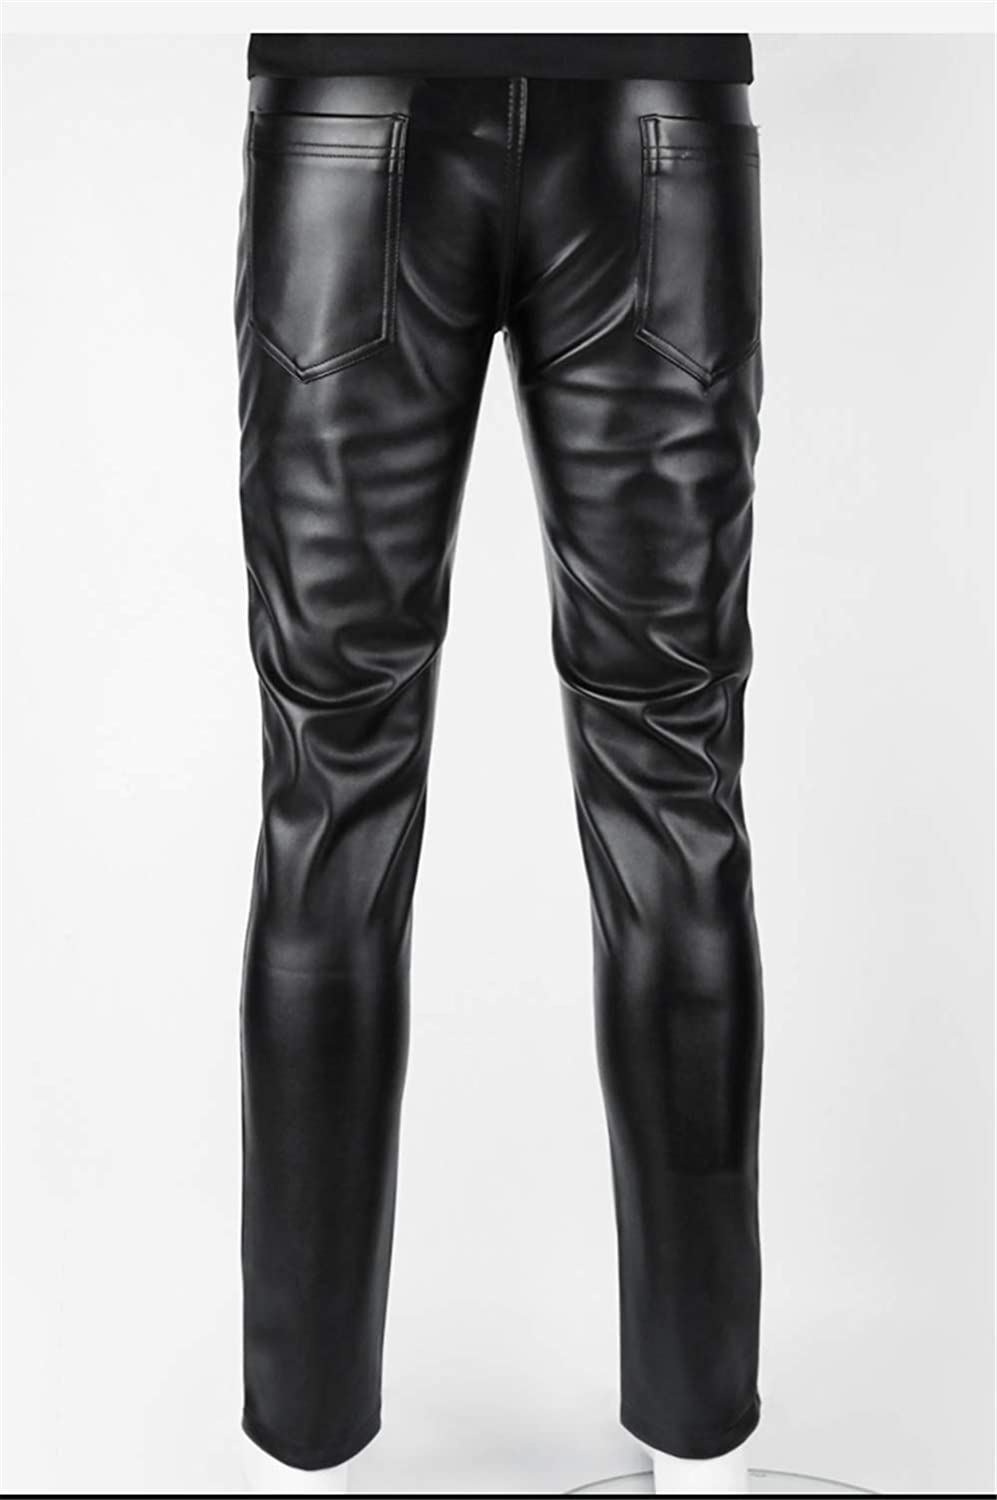 Men's Steampunk Pants & Trousers steel master Punk Casual Pants for Men Gothic Holes Tight Motorcycle Pants Strentch Black Ripped Jeans $67.40 AT vintagedancer.com